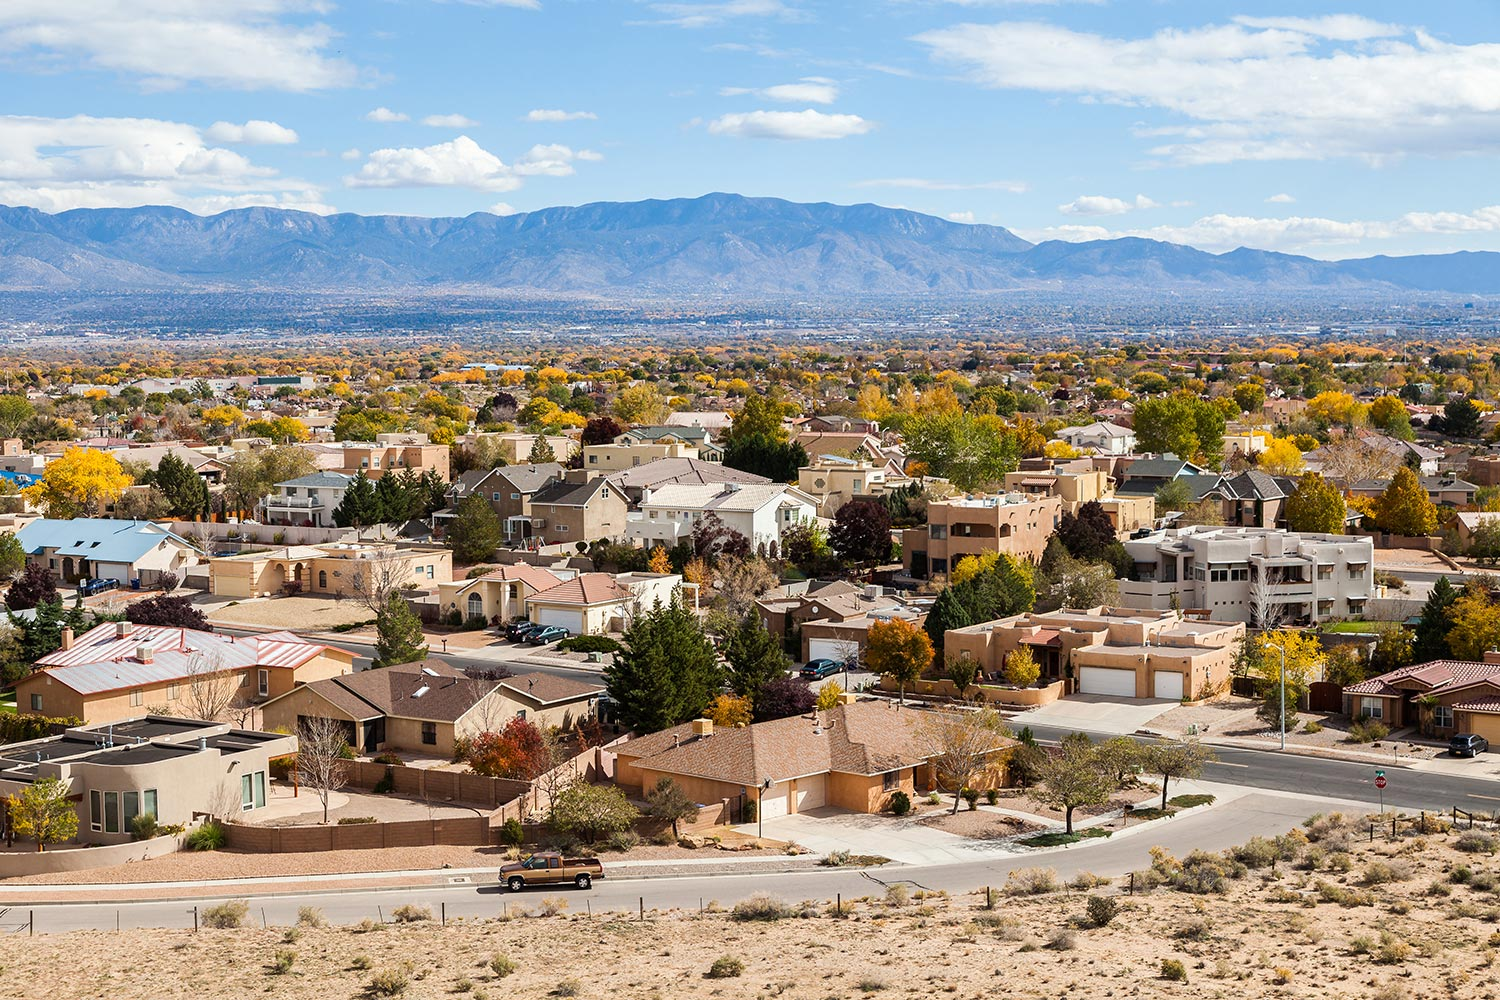 Aerial view of homes and businesses in Albuquerque